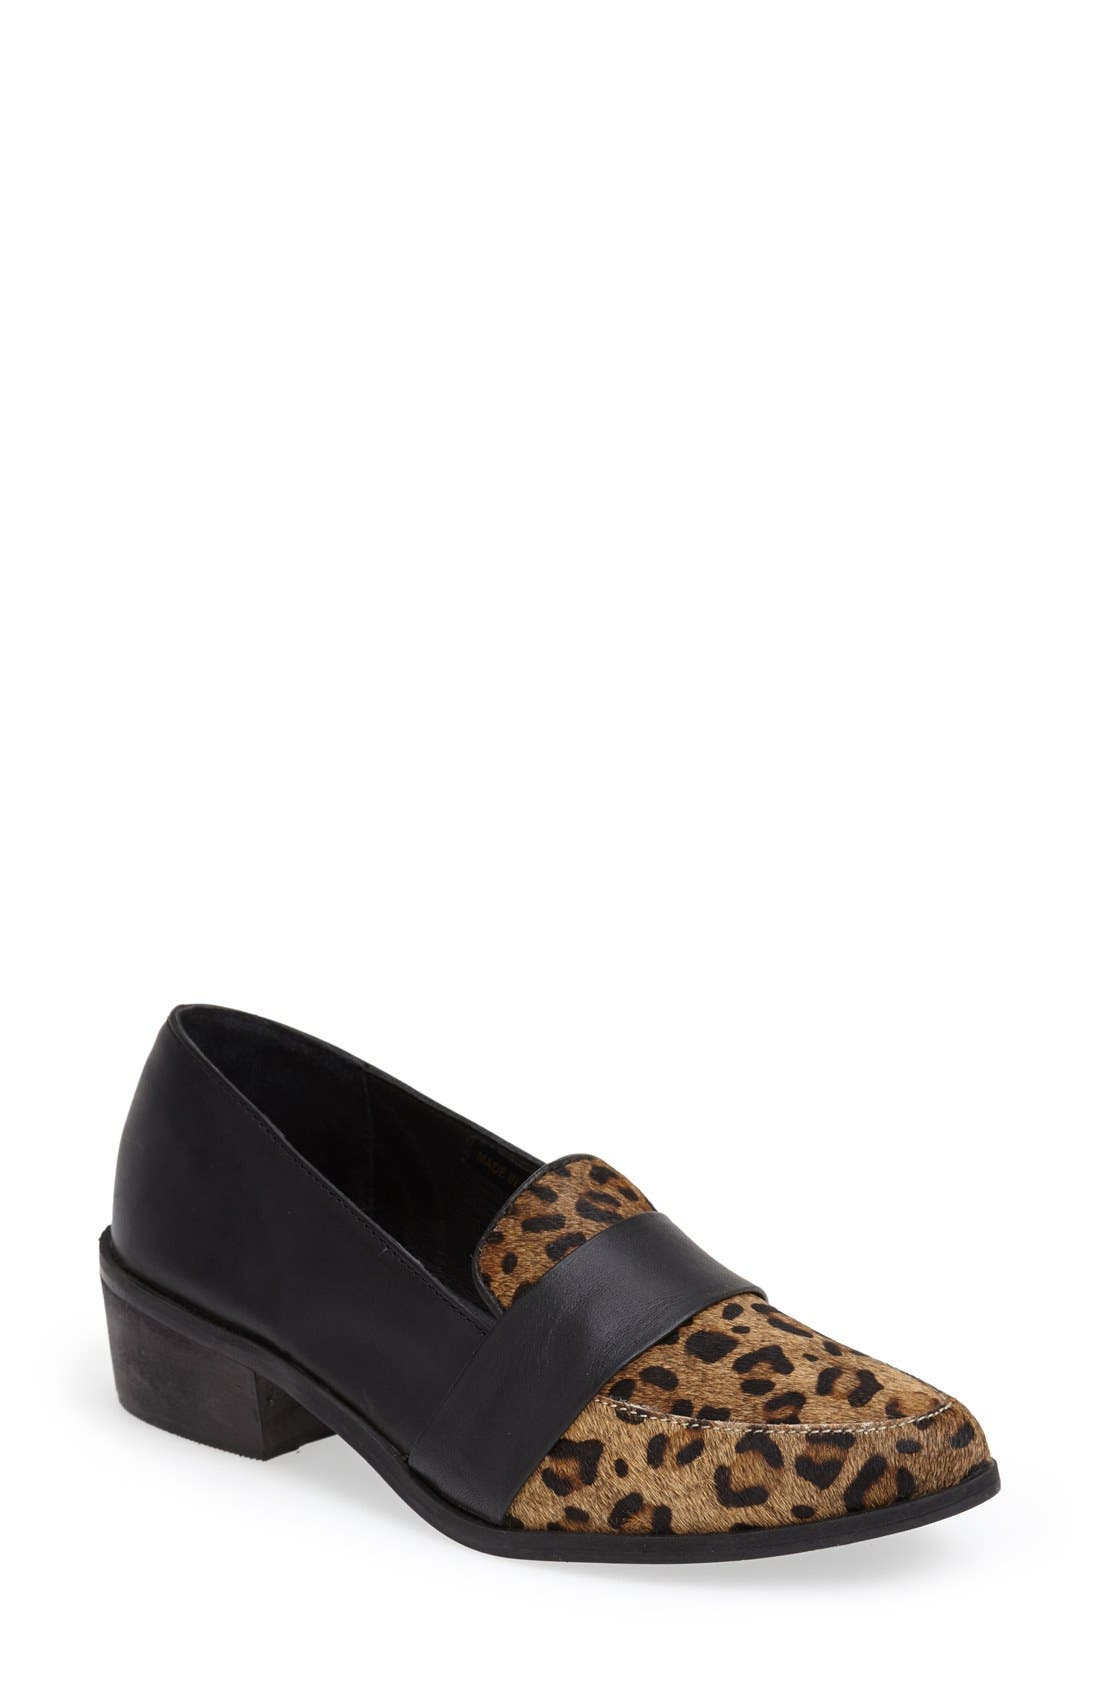 'Baha' Calf Hair and Leather Loafer,                         Main,                         color, Black Leopard